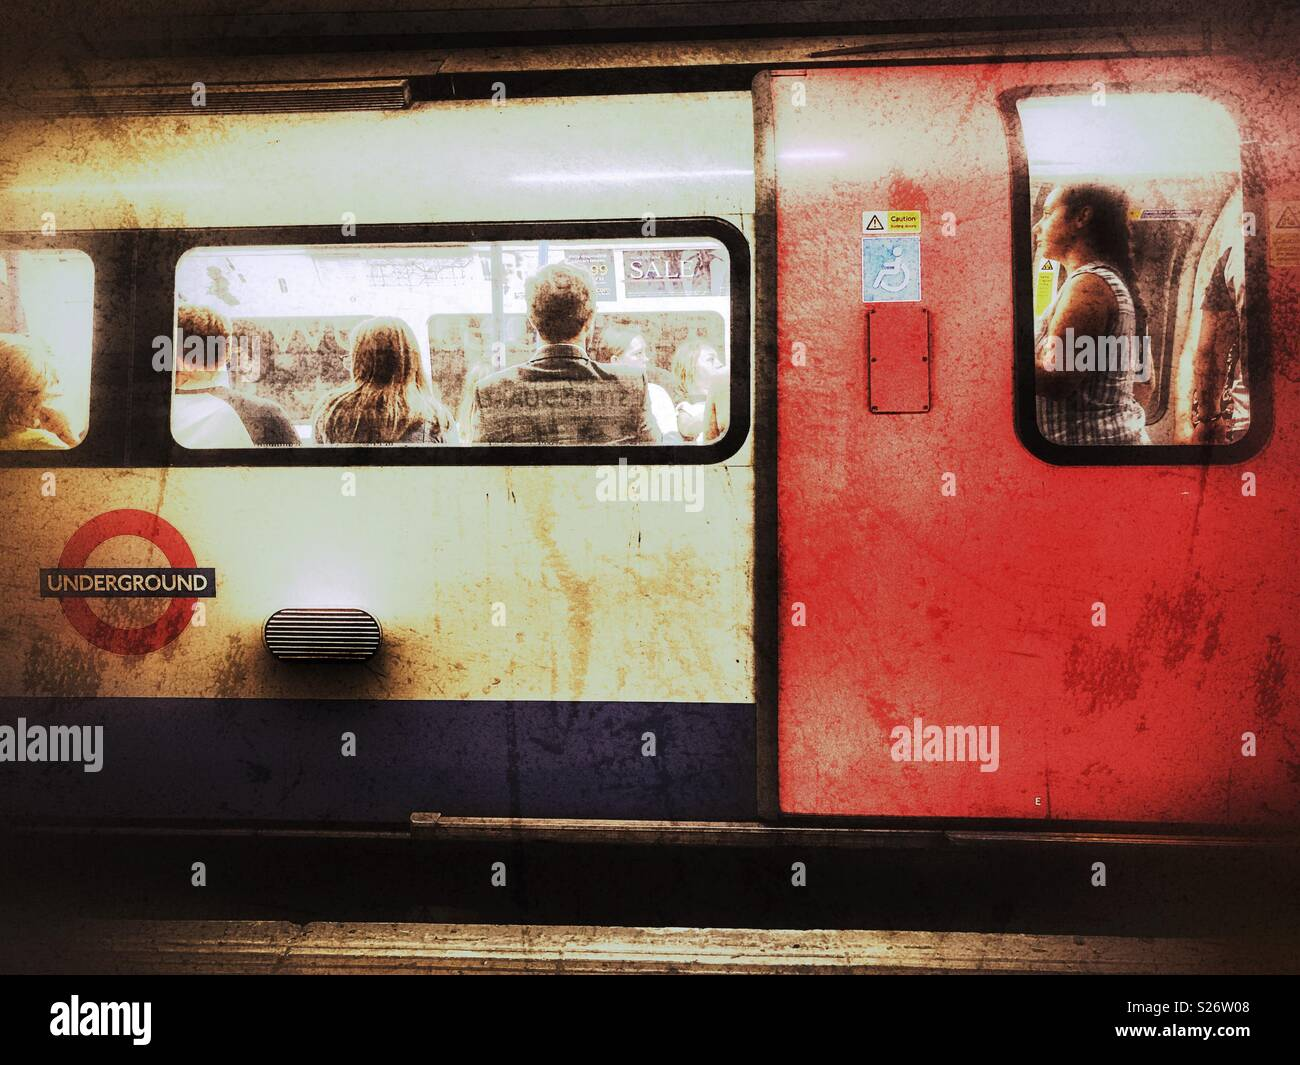 London Underground, People on a Northern Line tube train, Leicester Square tube station, London, England - Stock Image